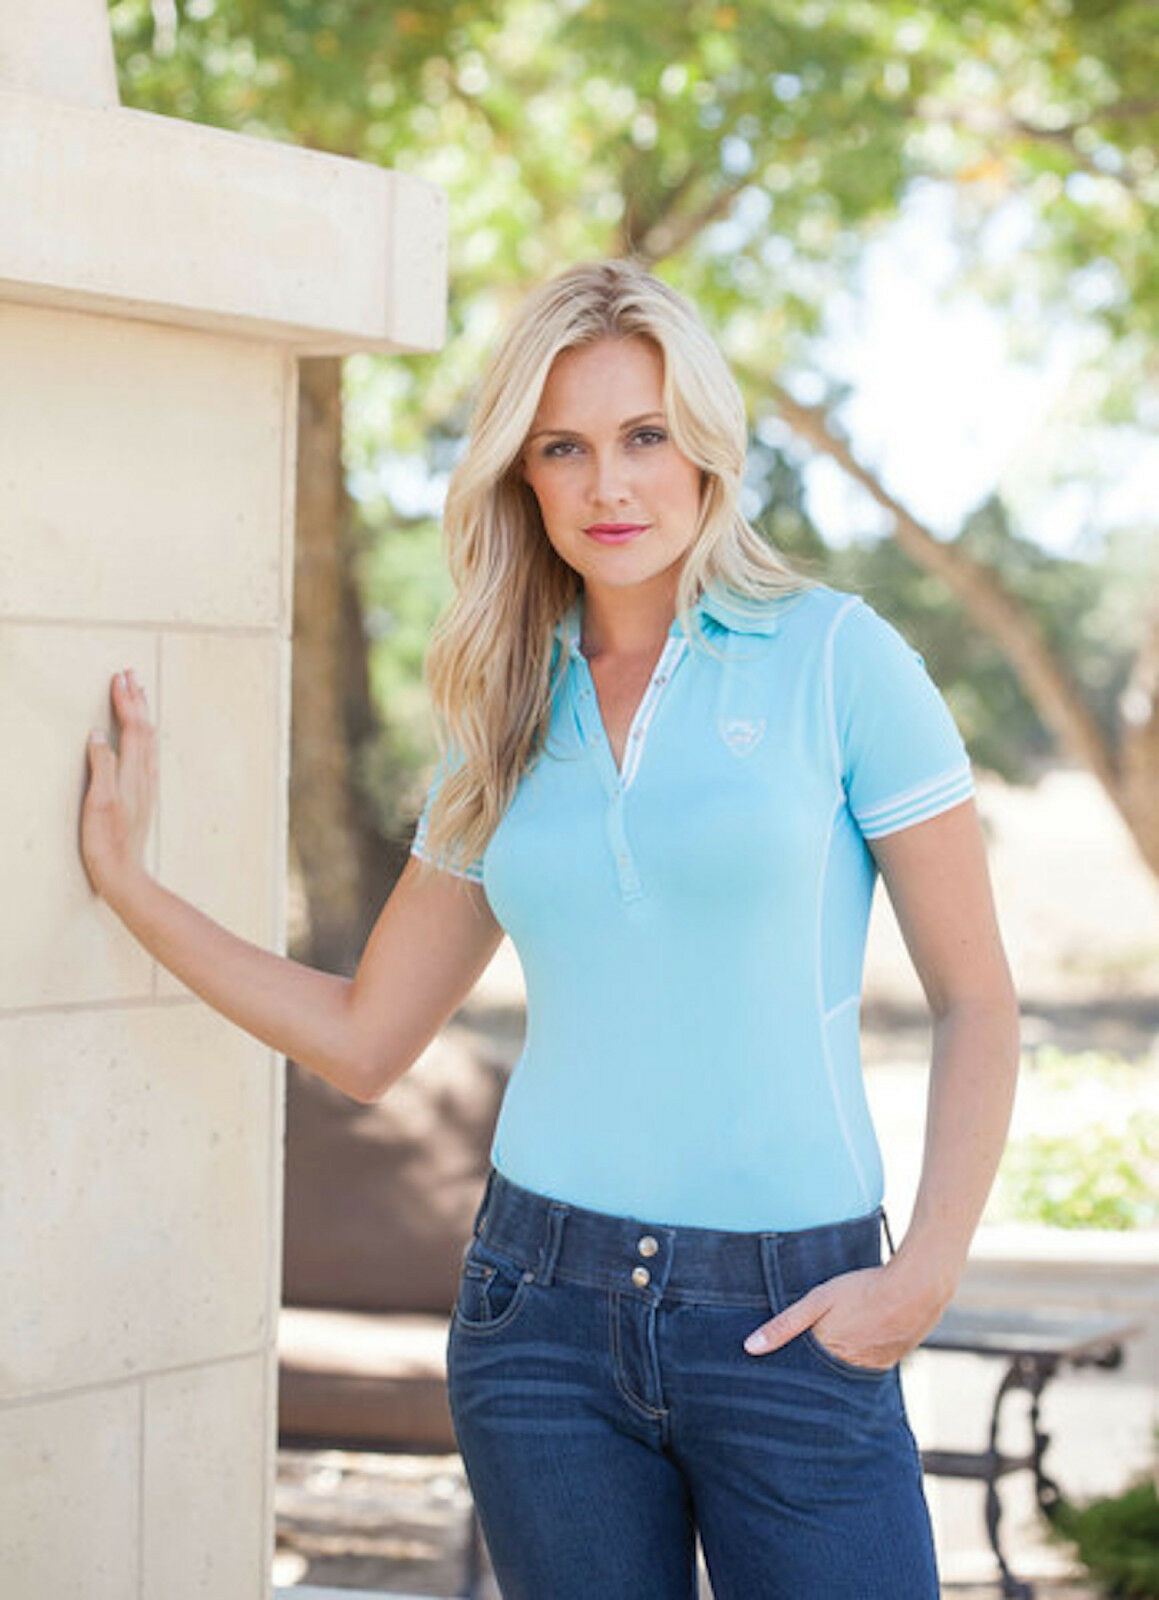 Goode Rider Ideal Sport Polo-Turquoise-XL   enjoy 50% off